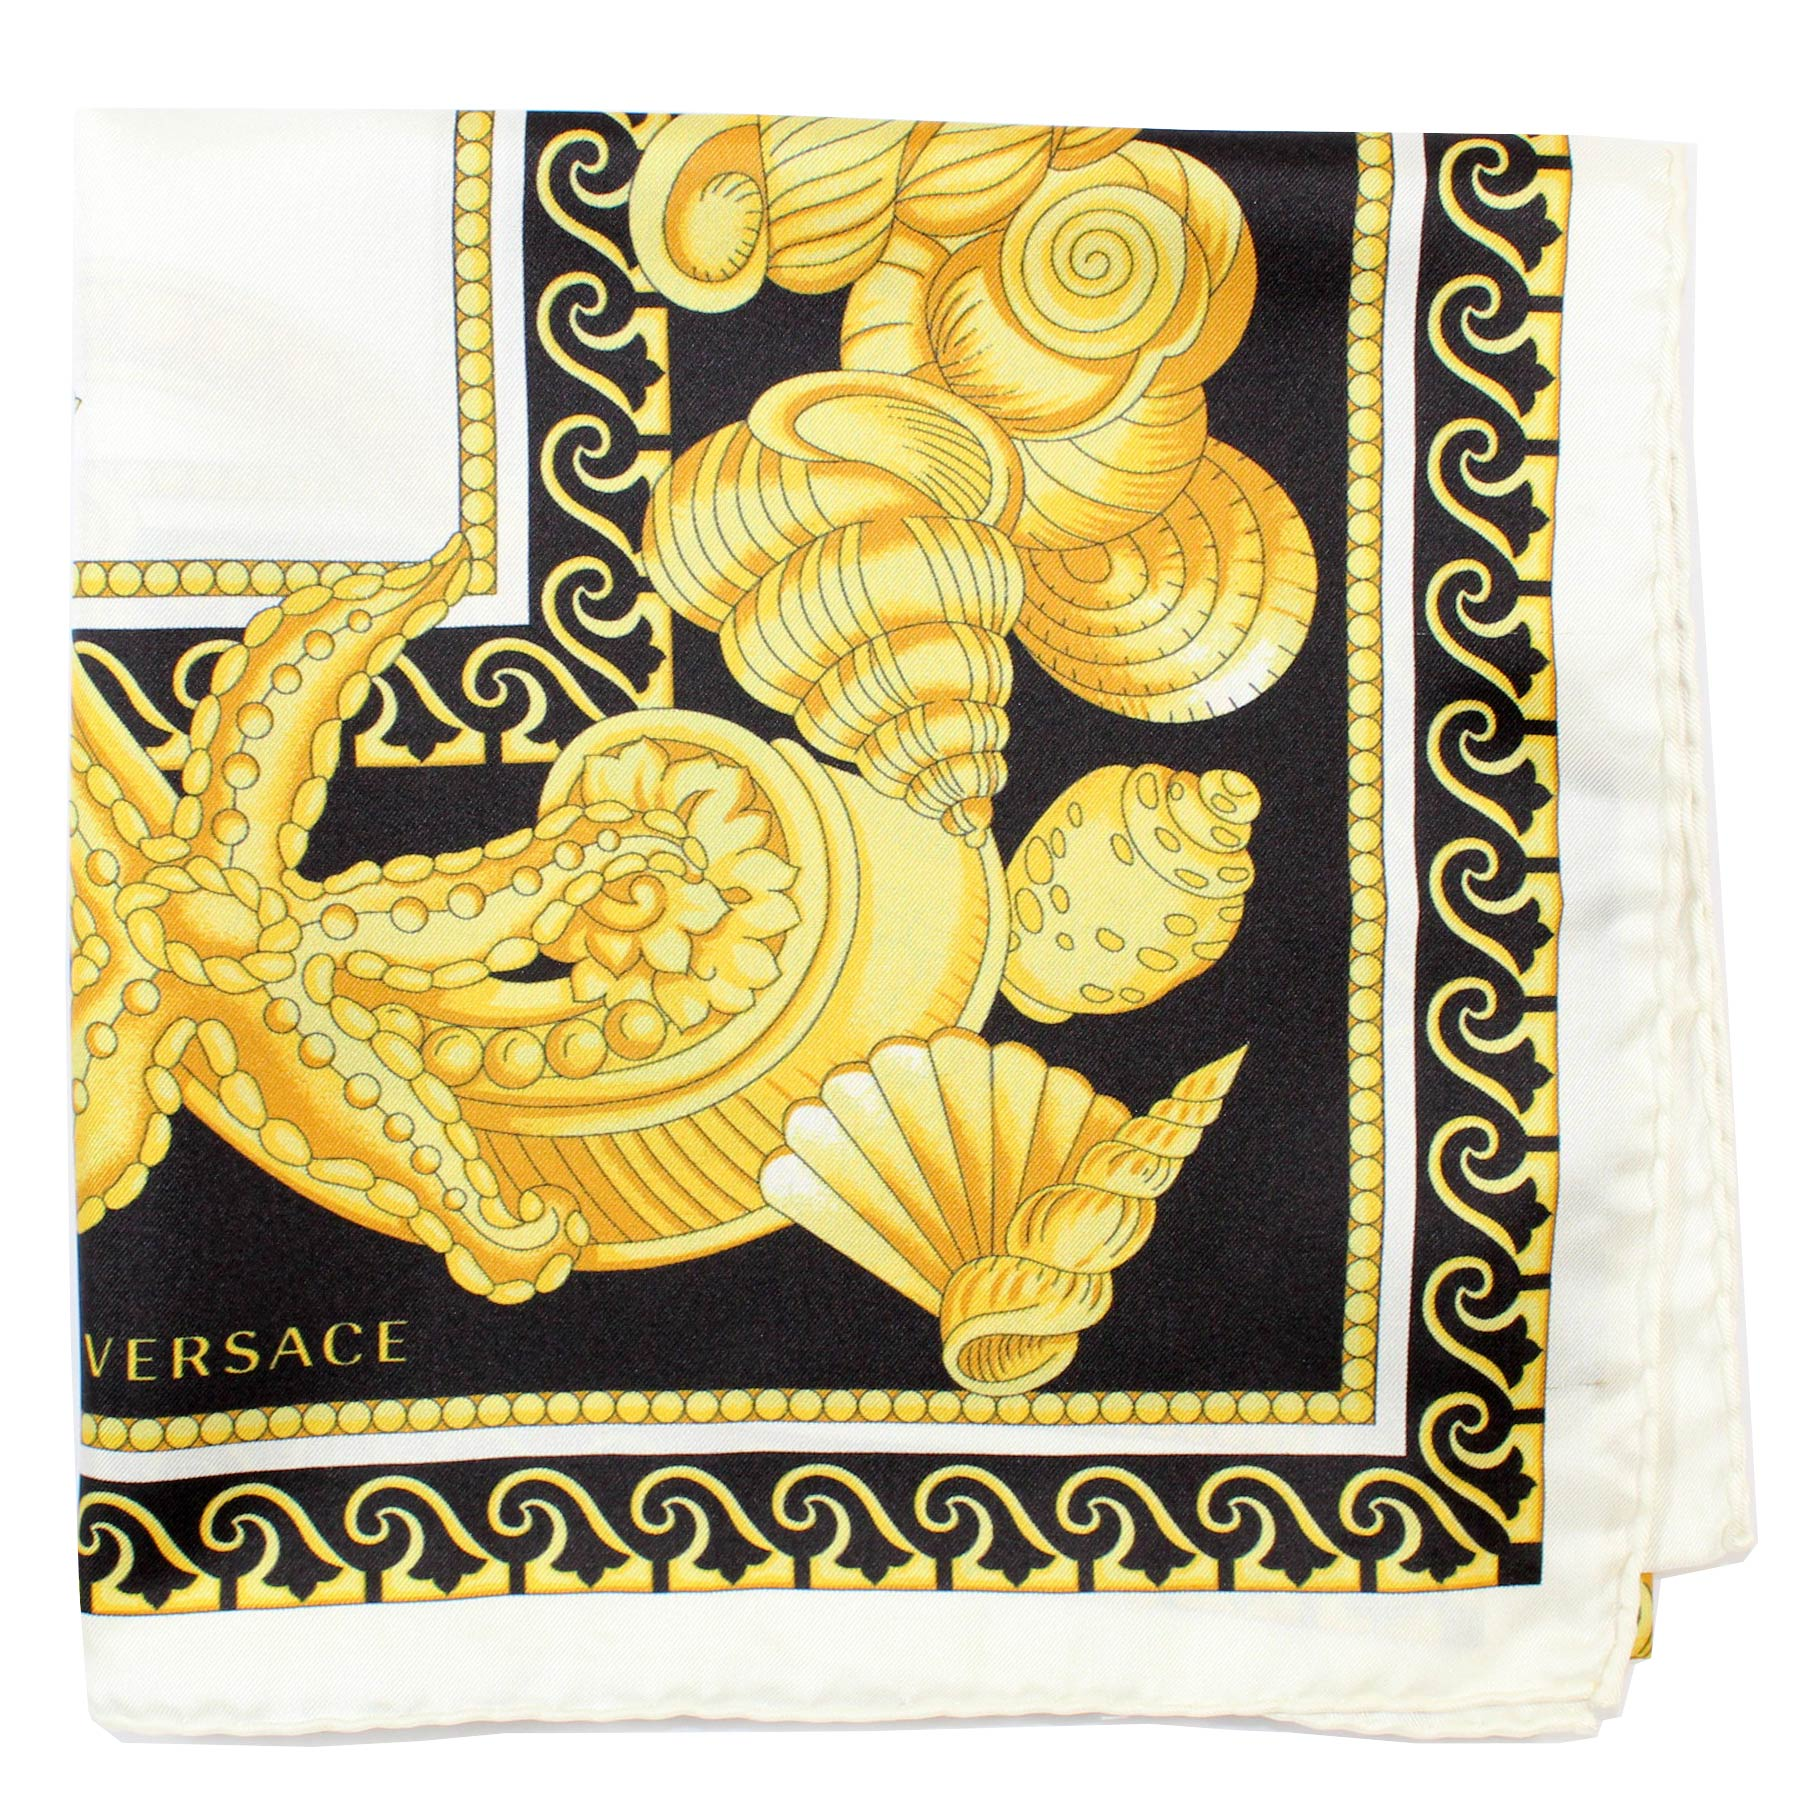 Versace Scarf White Black Gold Shells New